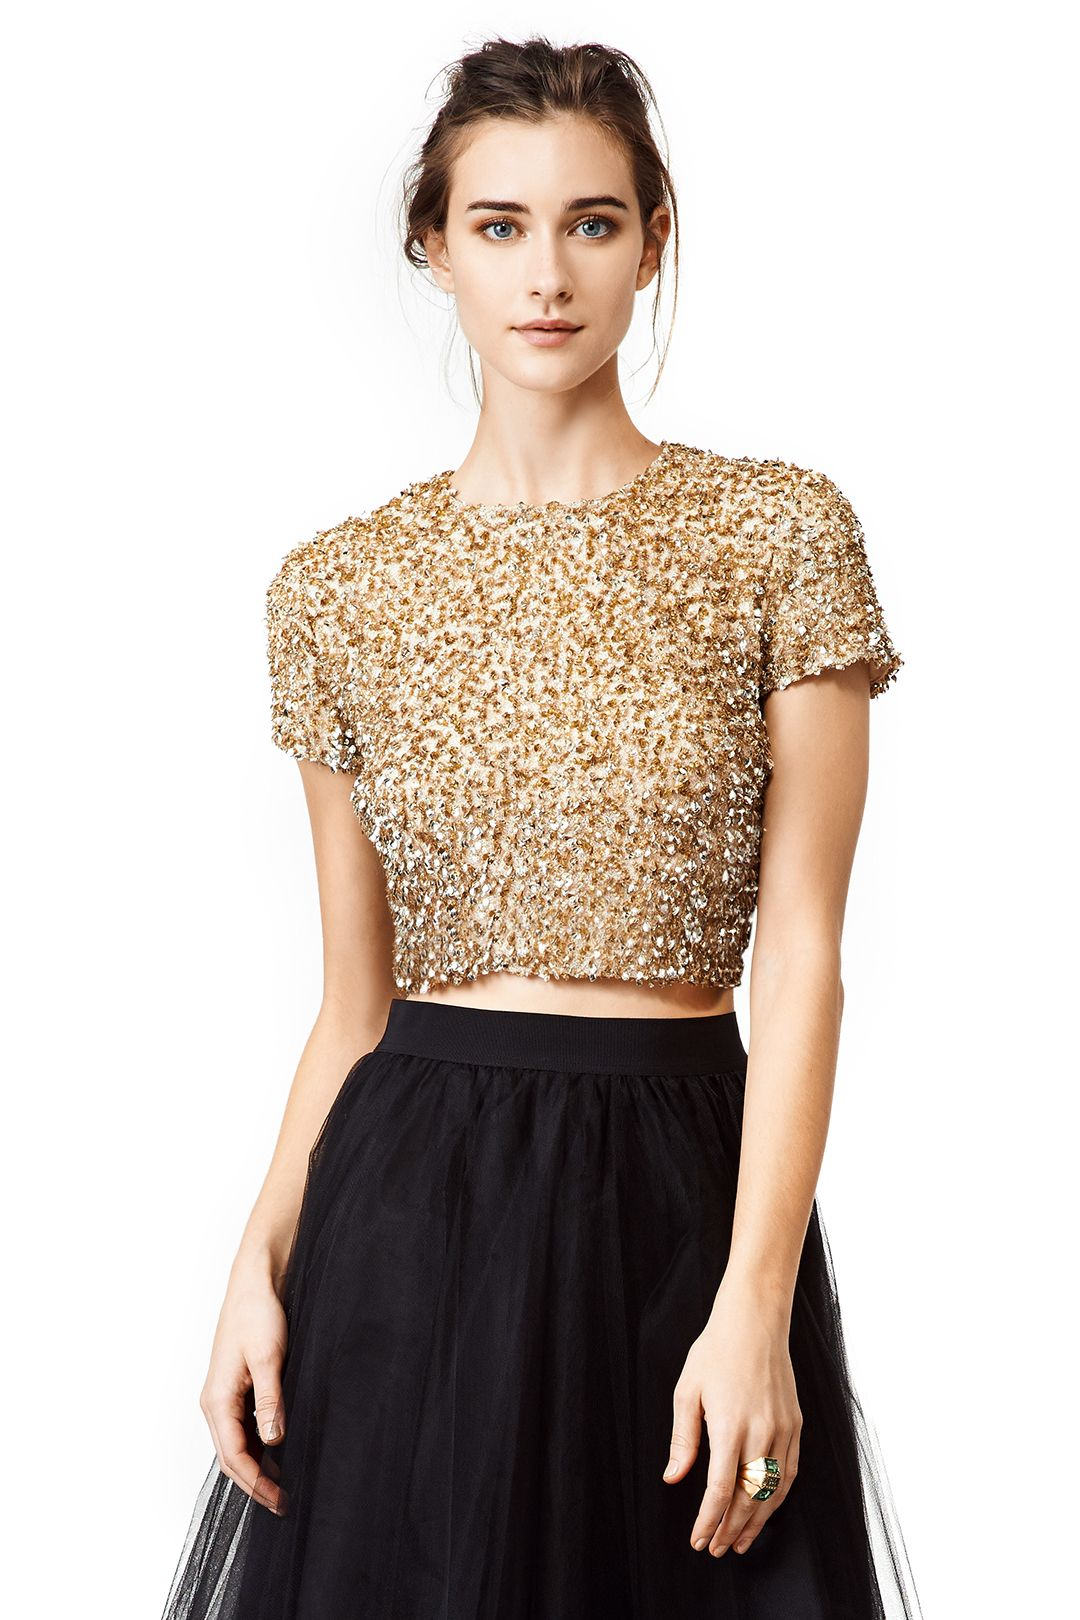 01e57750b70 20+ Sequin Gold Top Pictures and Ideas on STEM Education Caucus